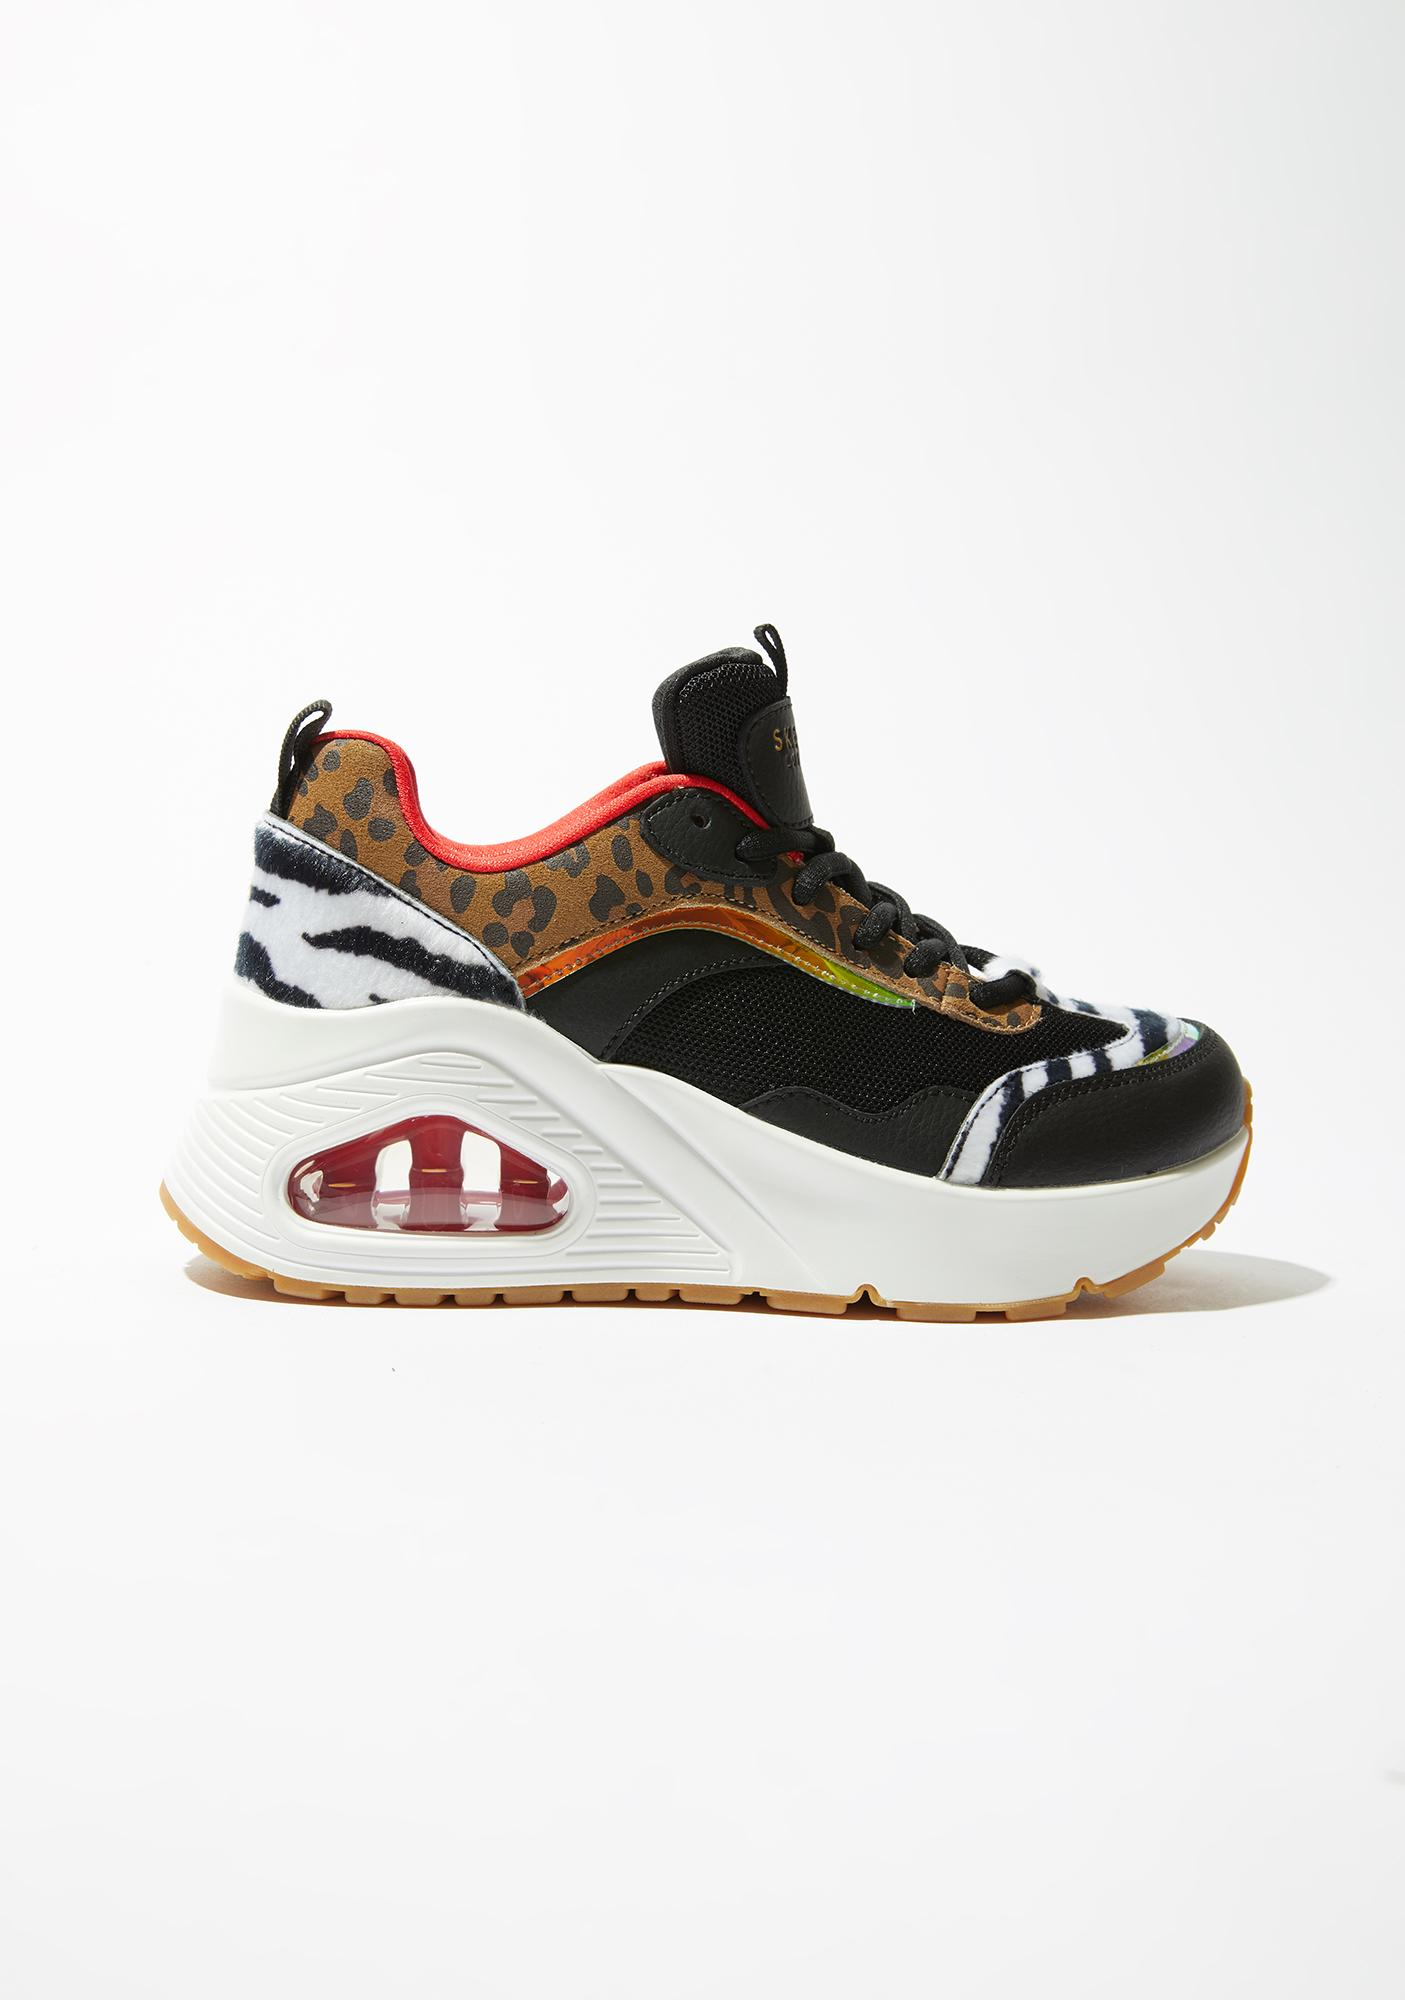 Skechers Uno Hi The Hunt Sneakers